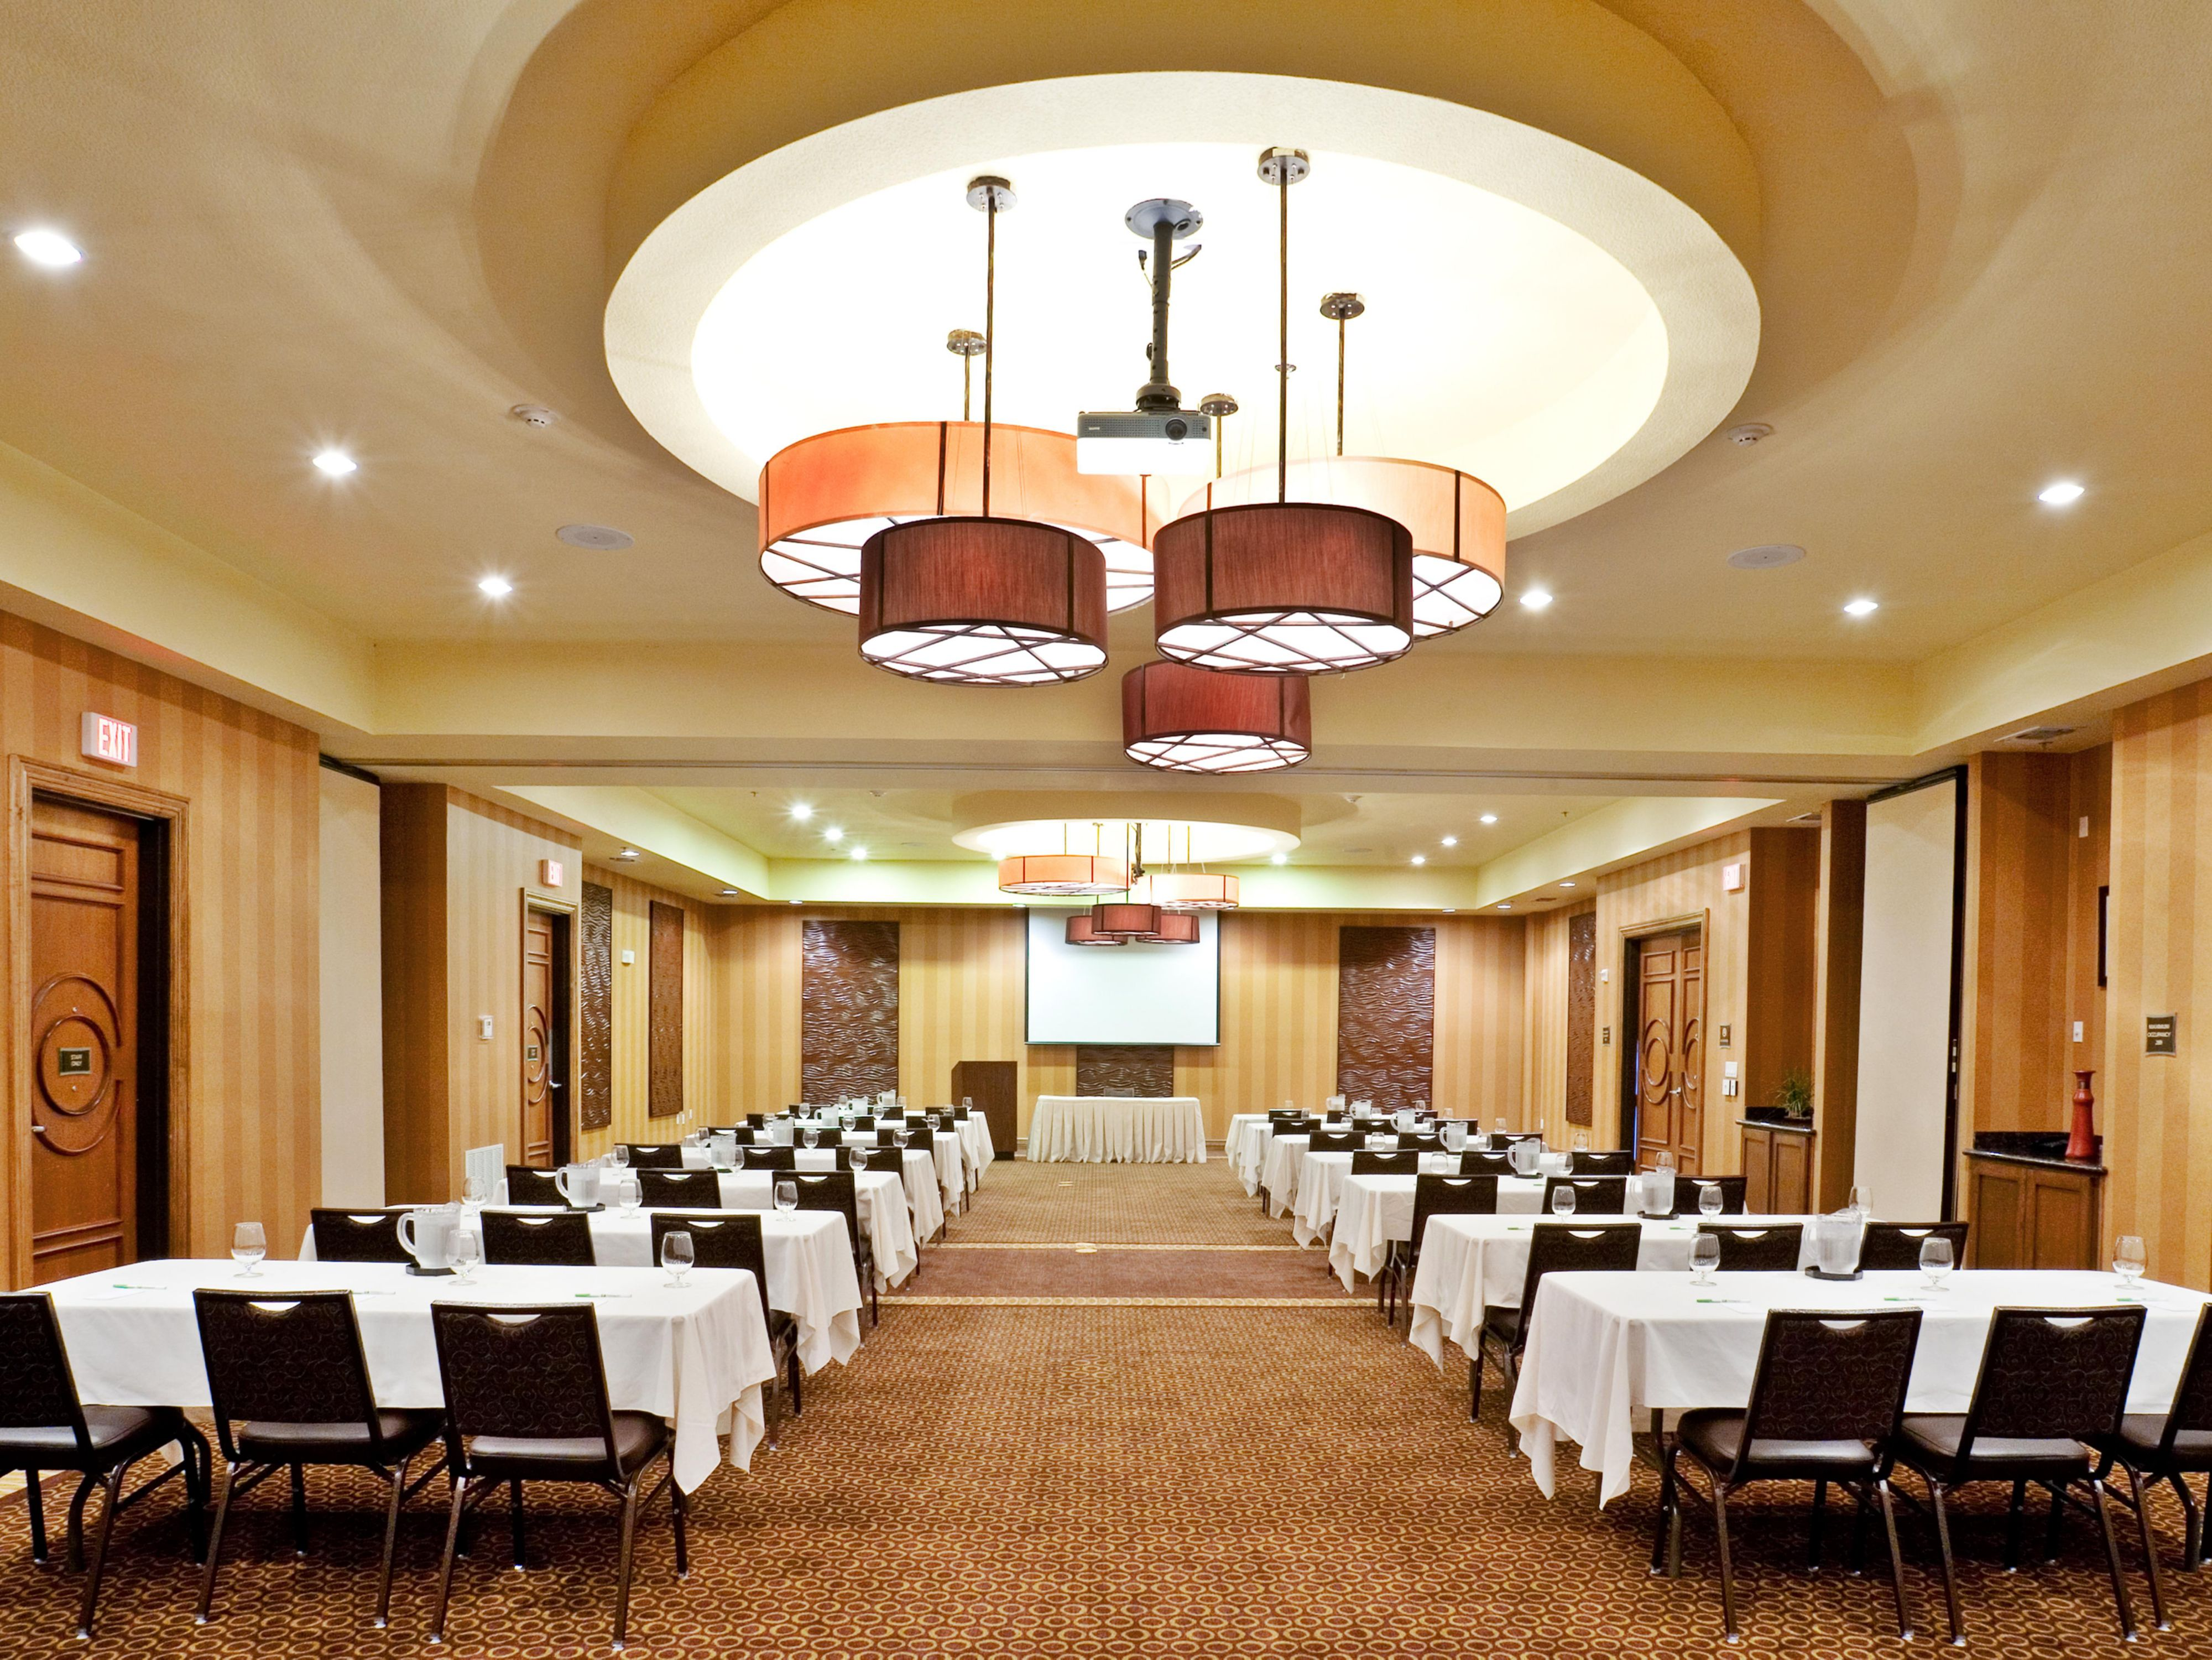 Ideal space for business meetings, workshops and more.